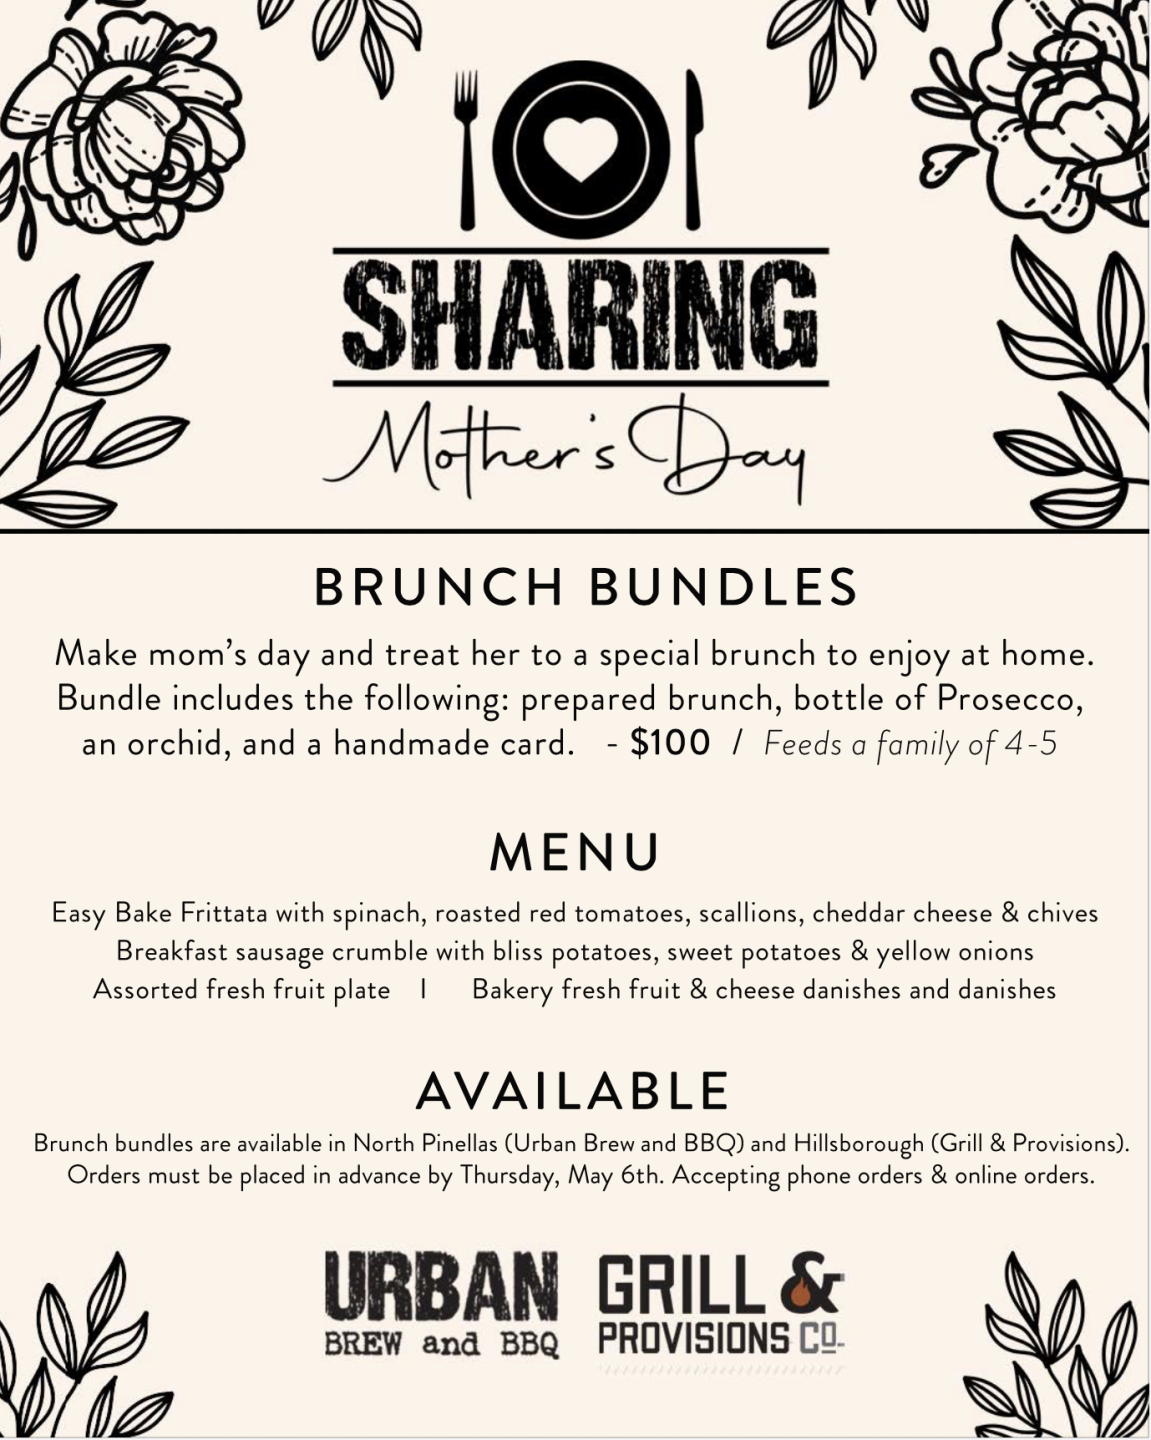 Sharing Mothers Day Urban Brew and BBQ menu.png